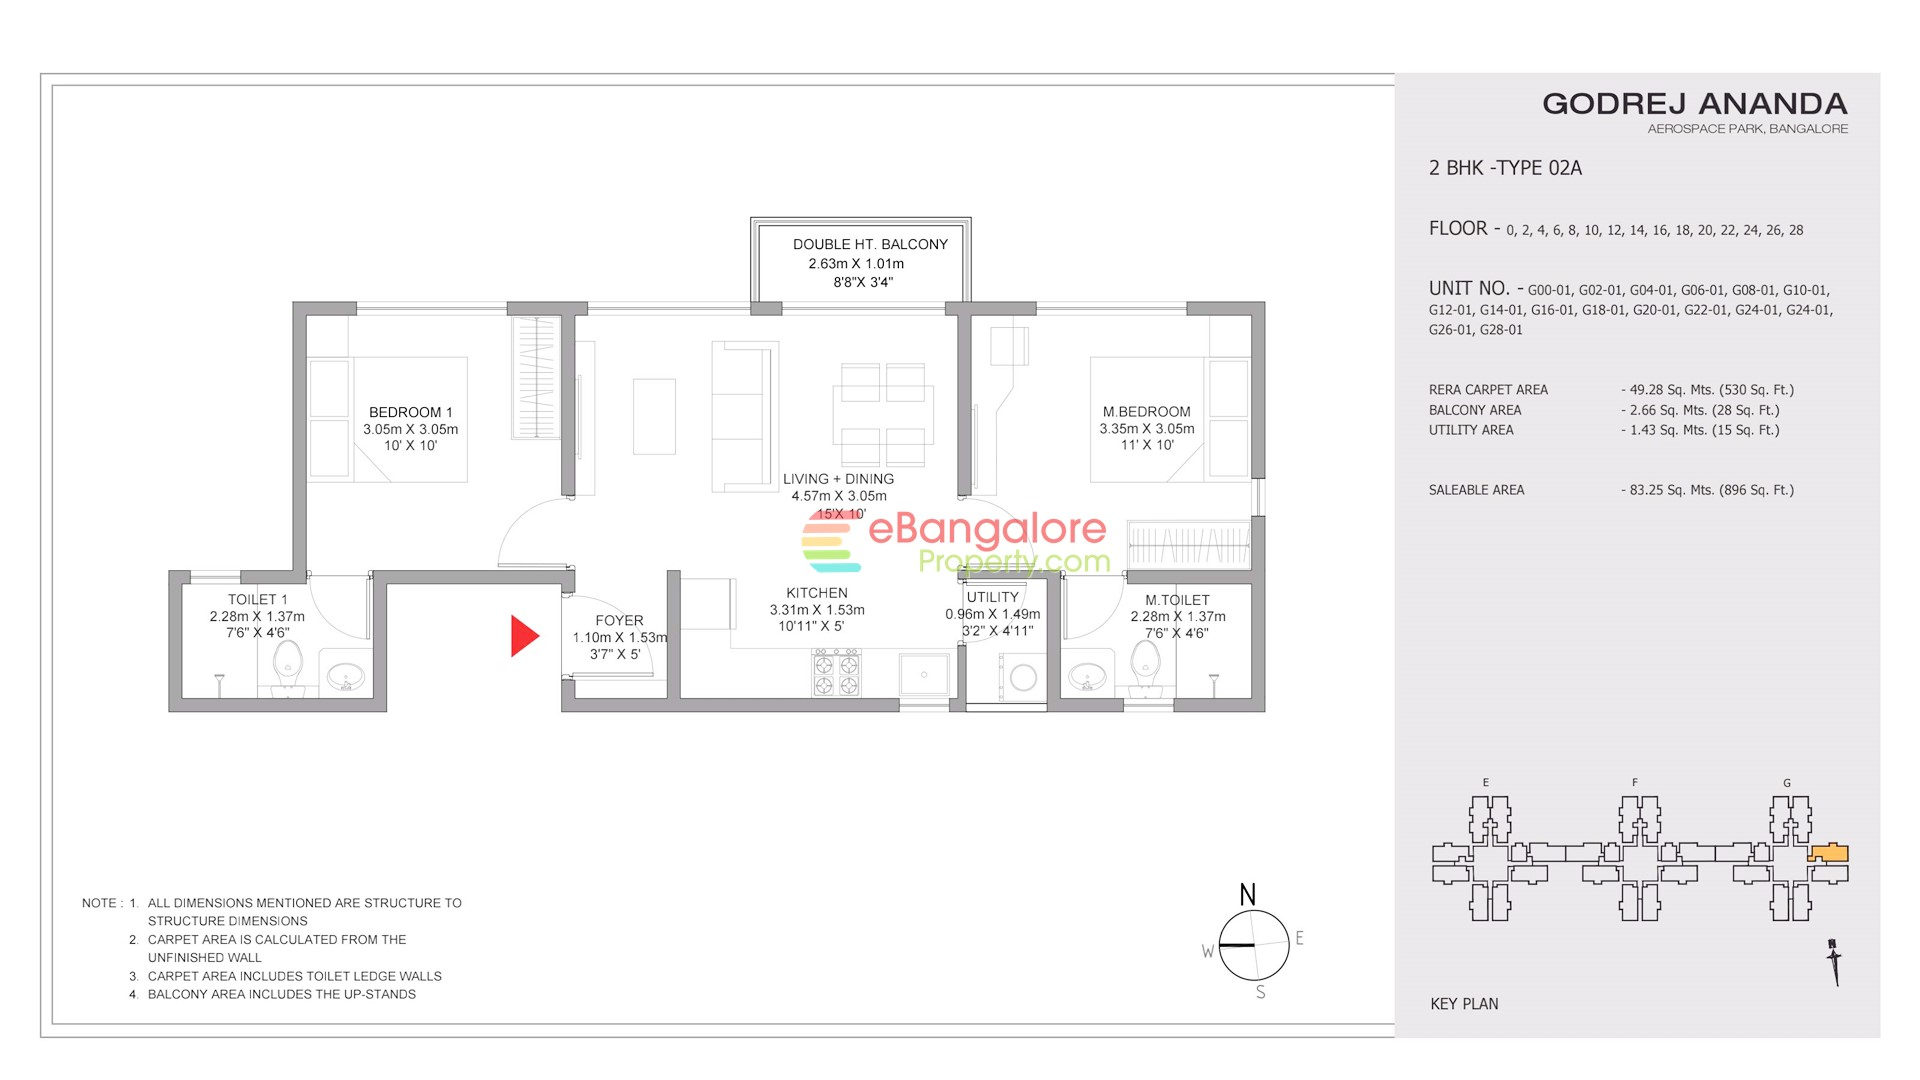 2BHK Type 02A